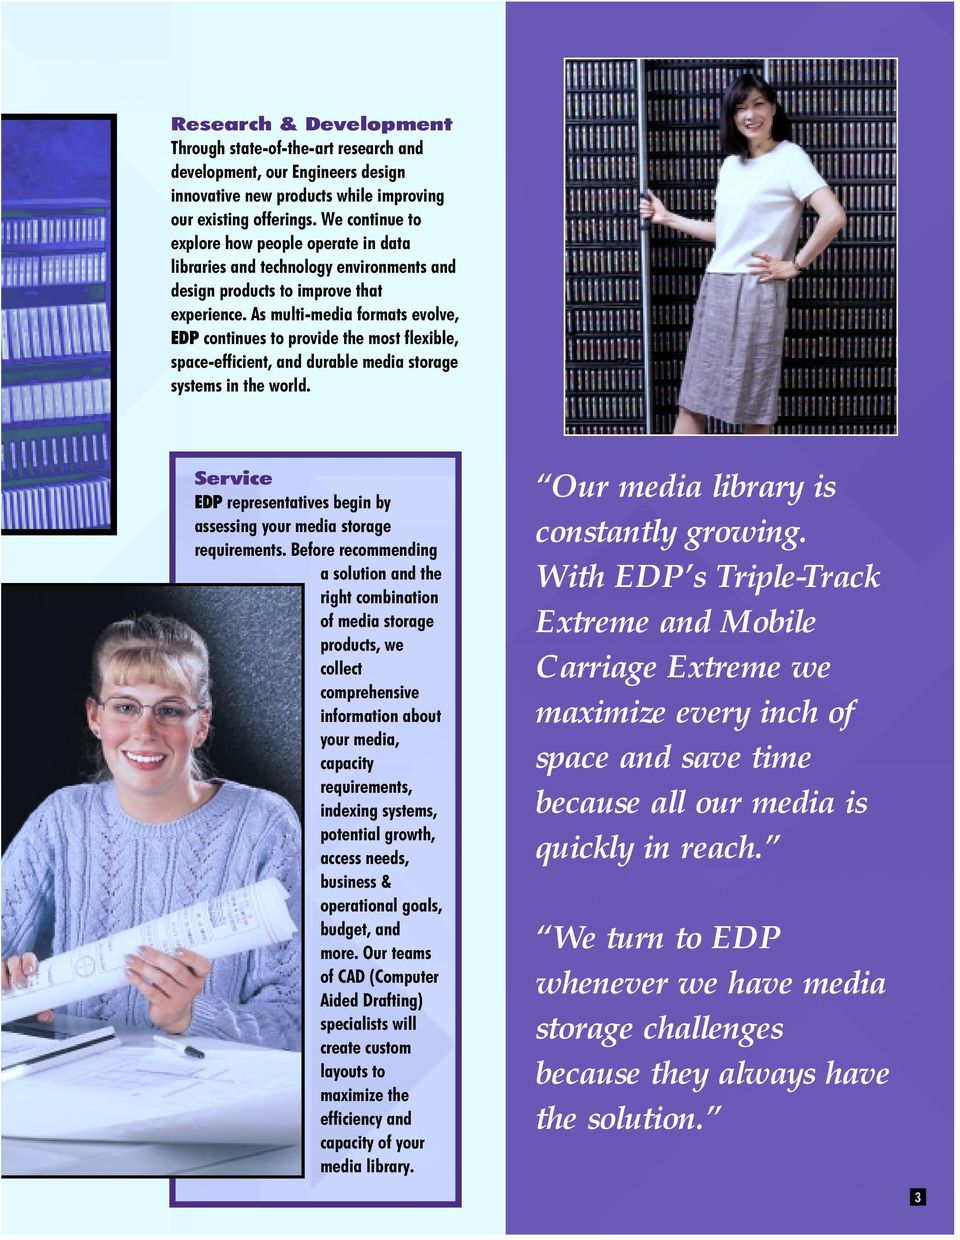 As multi-media formats evolve, EDP continues to provide the most flexible, space-efficient, and durable media storage systems in the world.